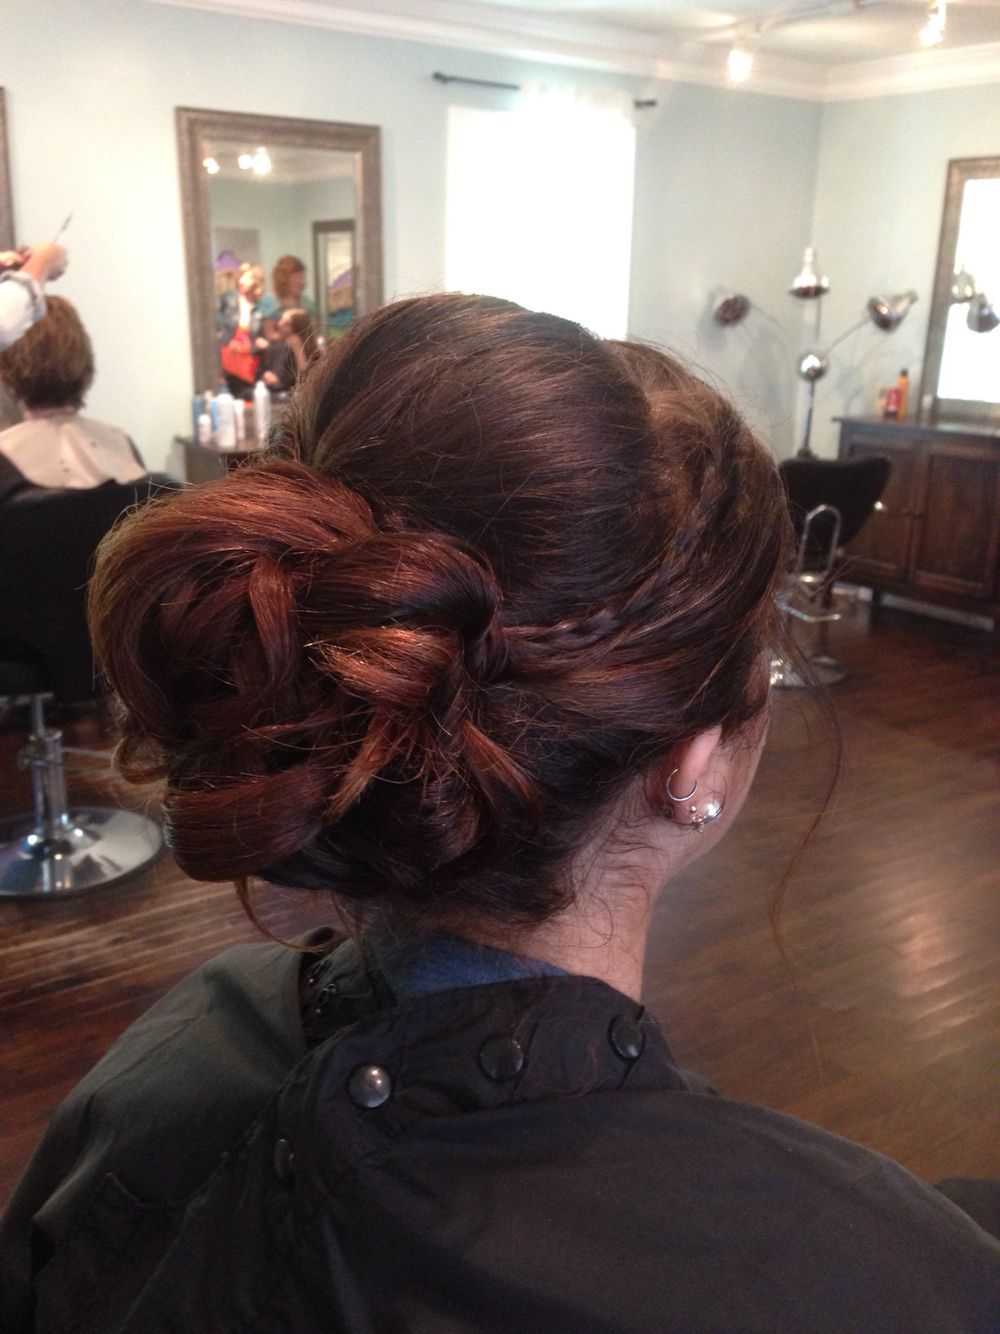 Long thick hair braid updo- prom hair